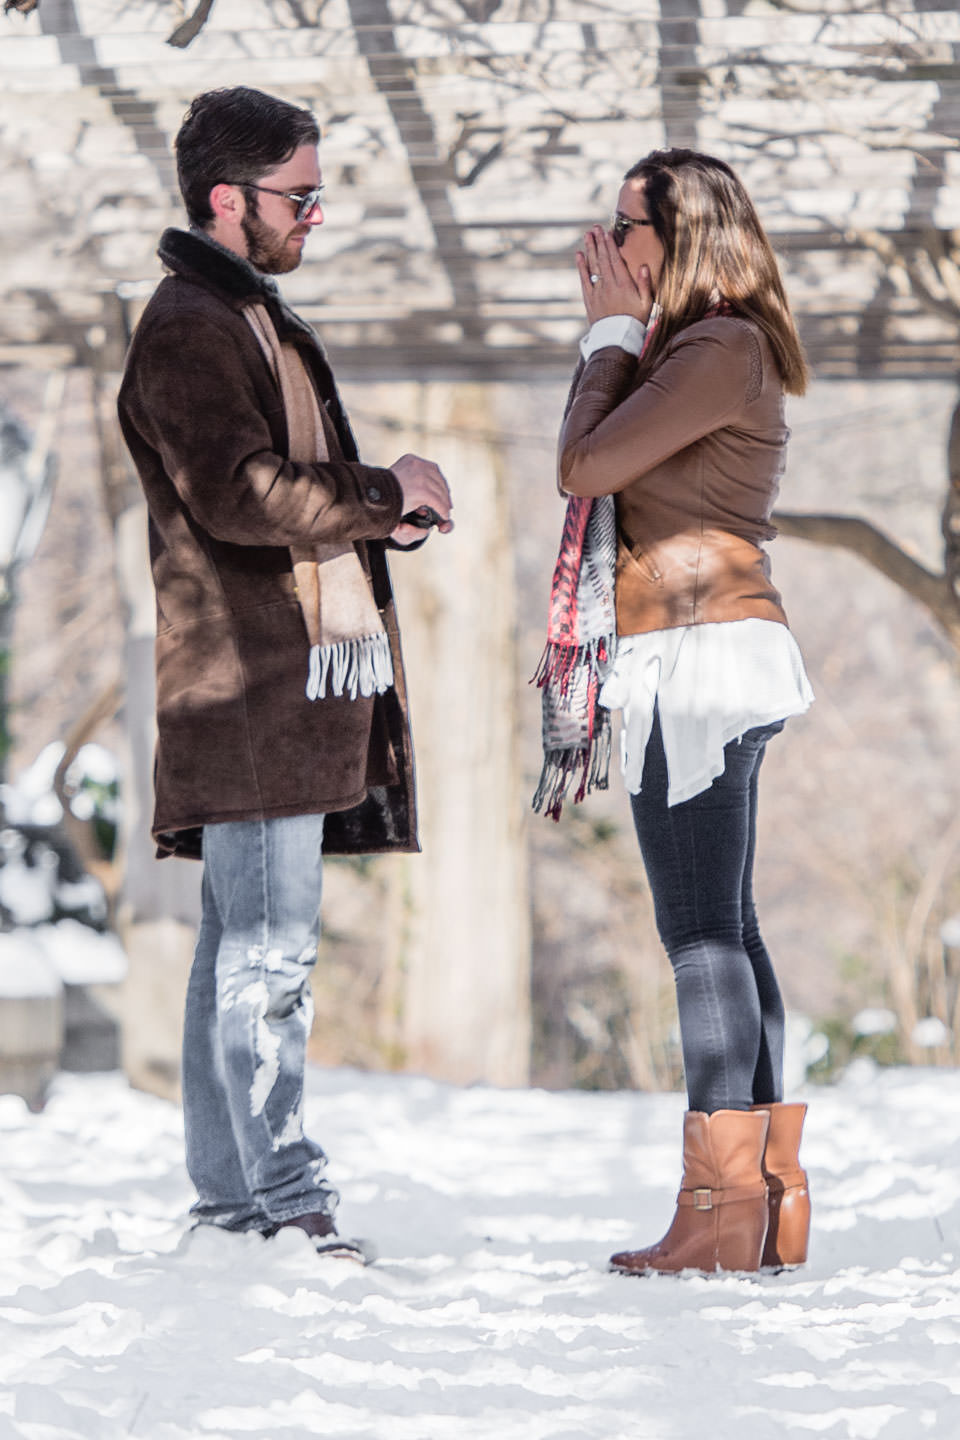 winter proposal in central park with snow girl said yes